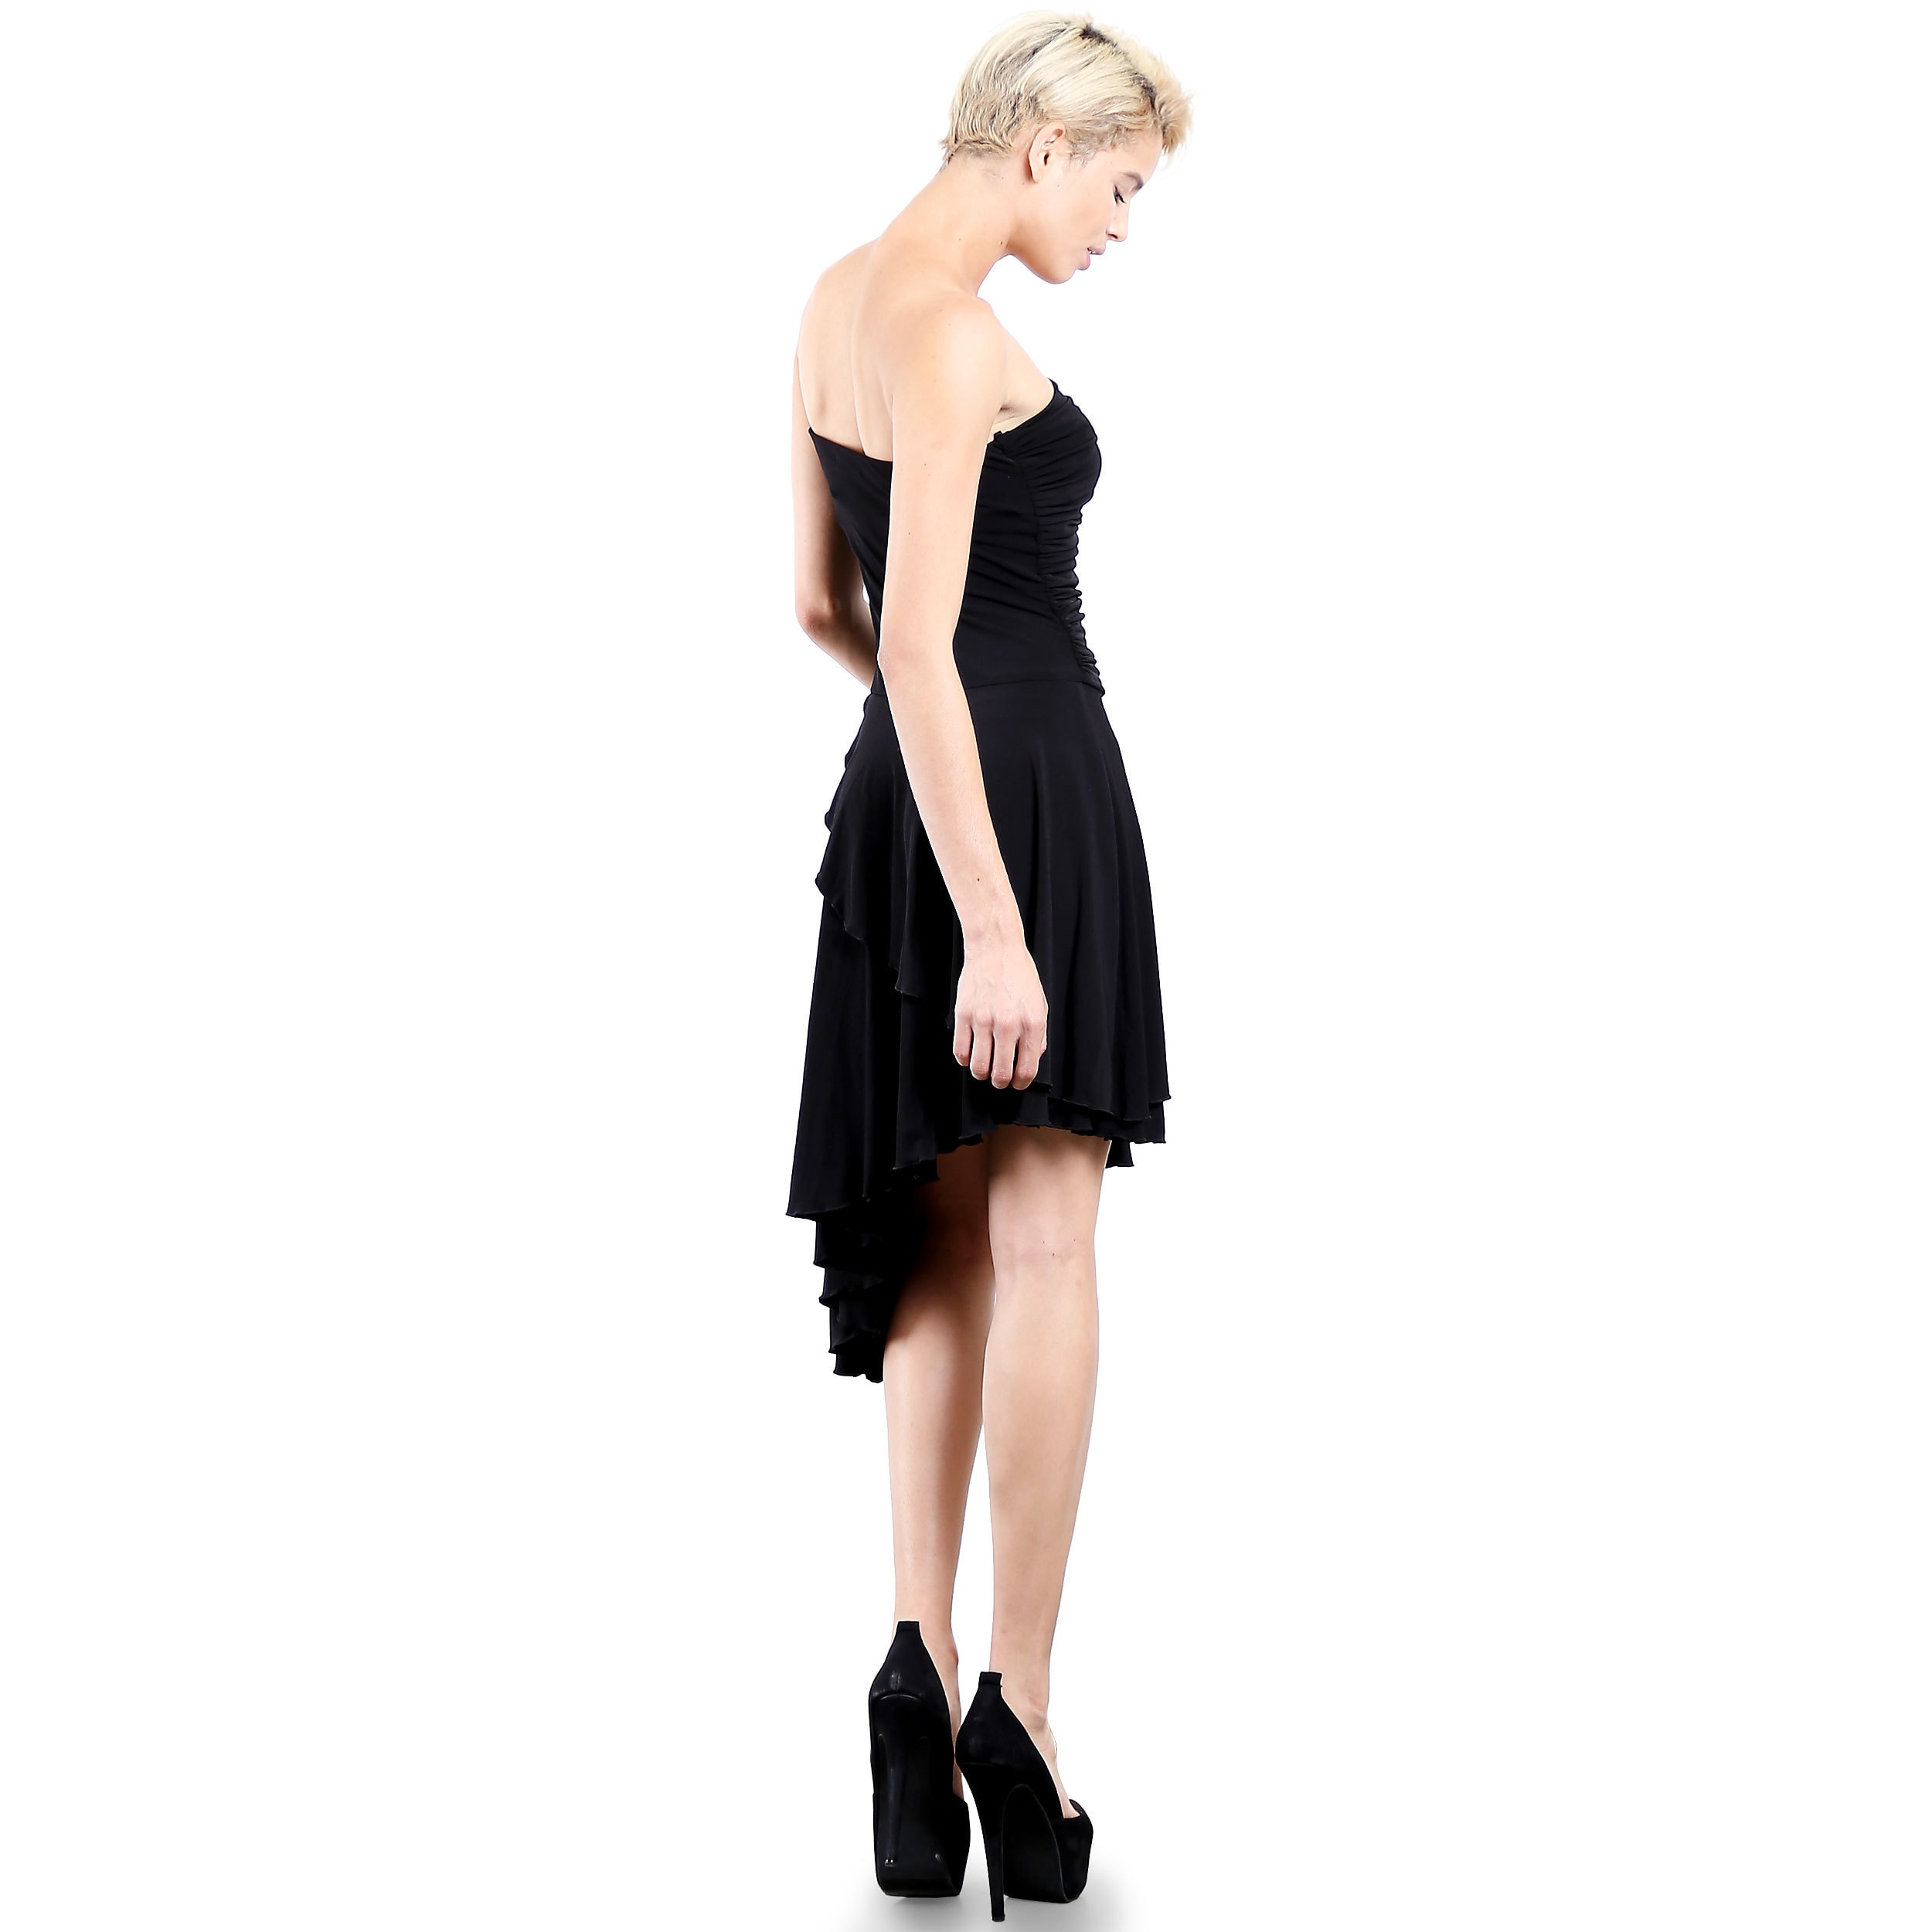 6392635c36 Shop Evanese Women s Black Polyester Spandex Cocktail Party Strapless Tube  Dress with Asymmetrical Skirt - Free Shipping Today - Overstock - 12958661